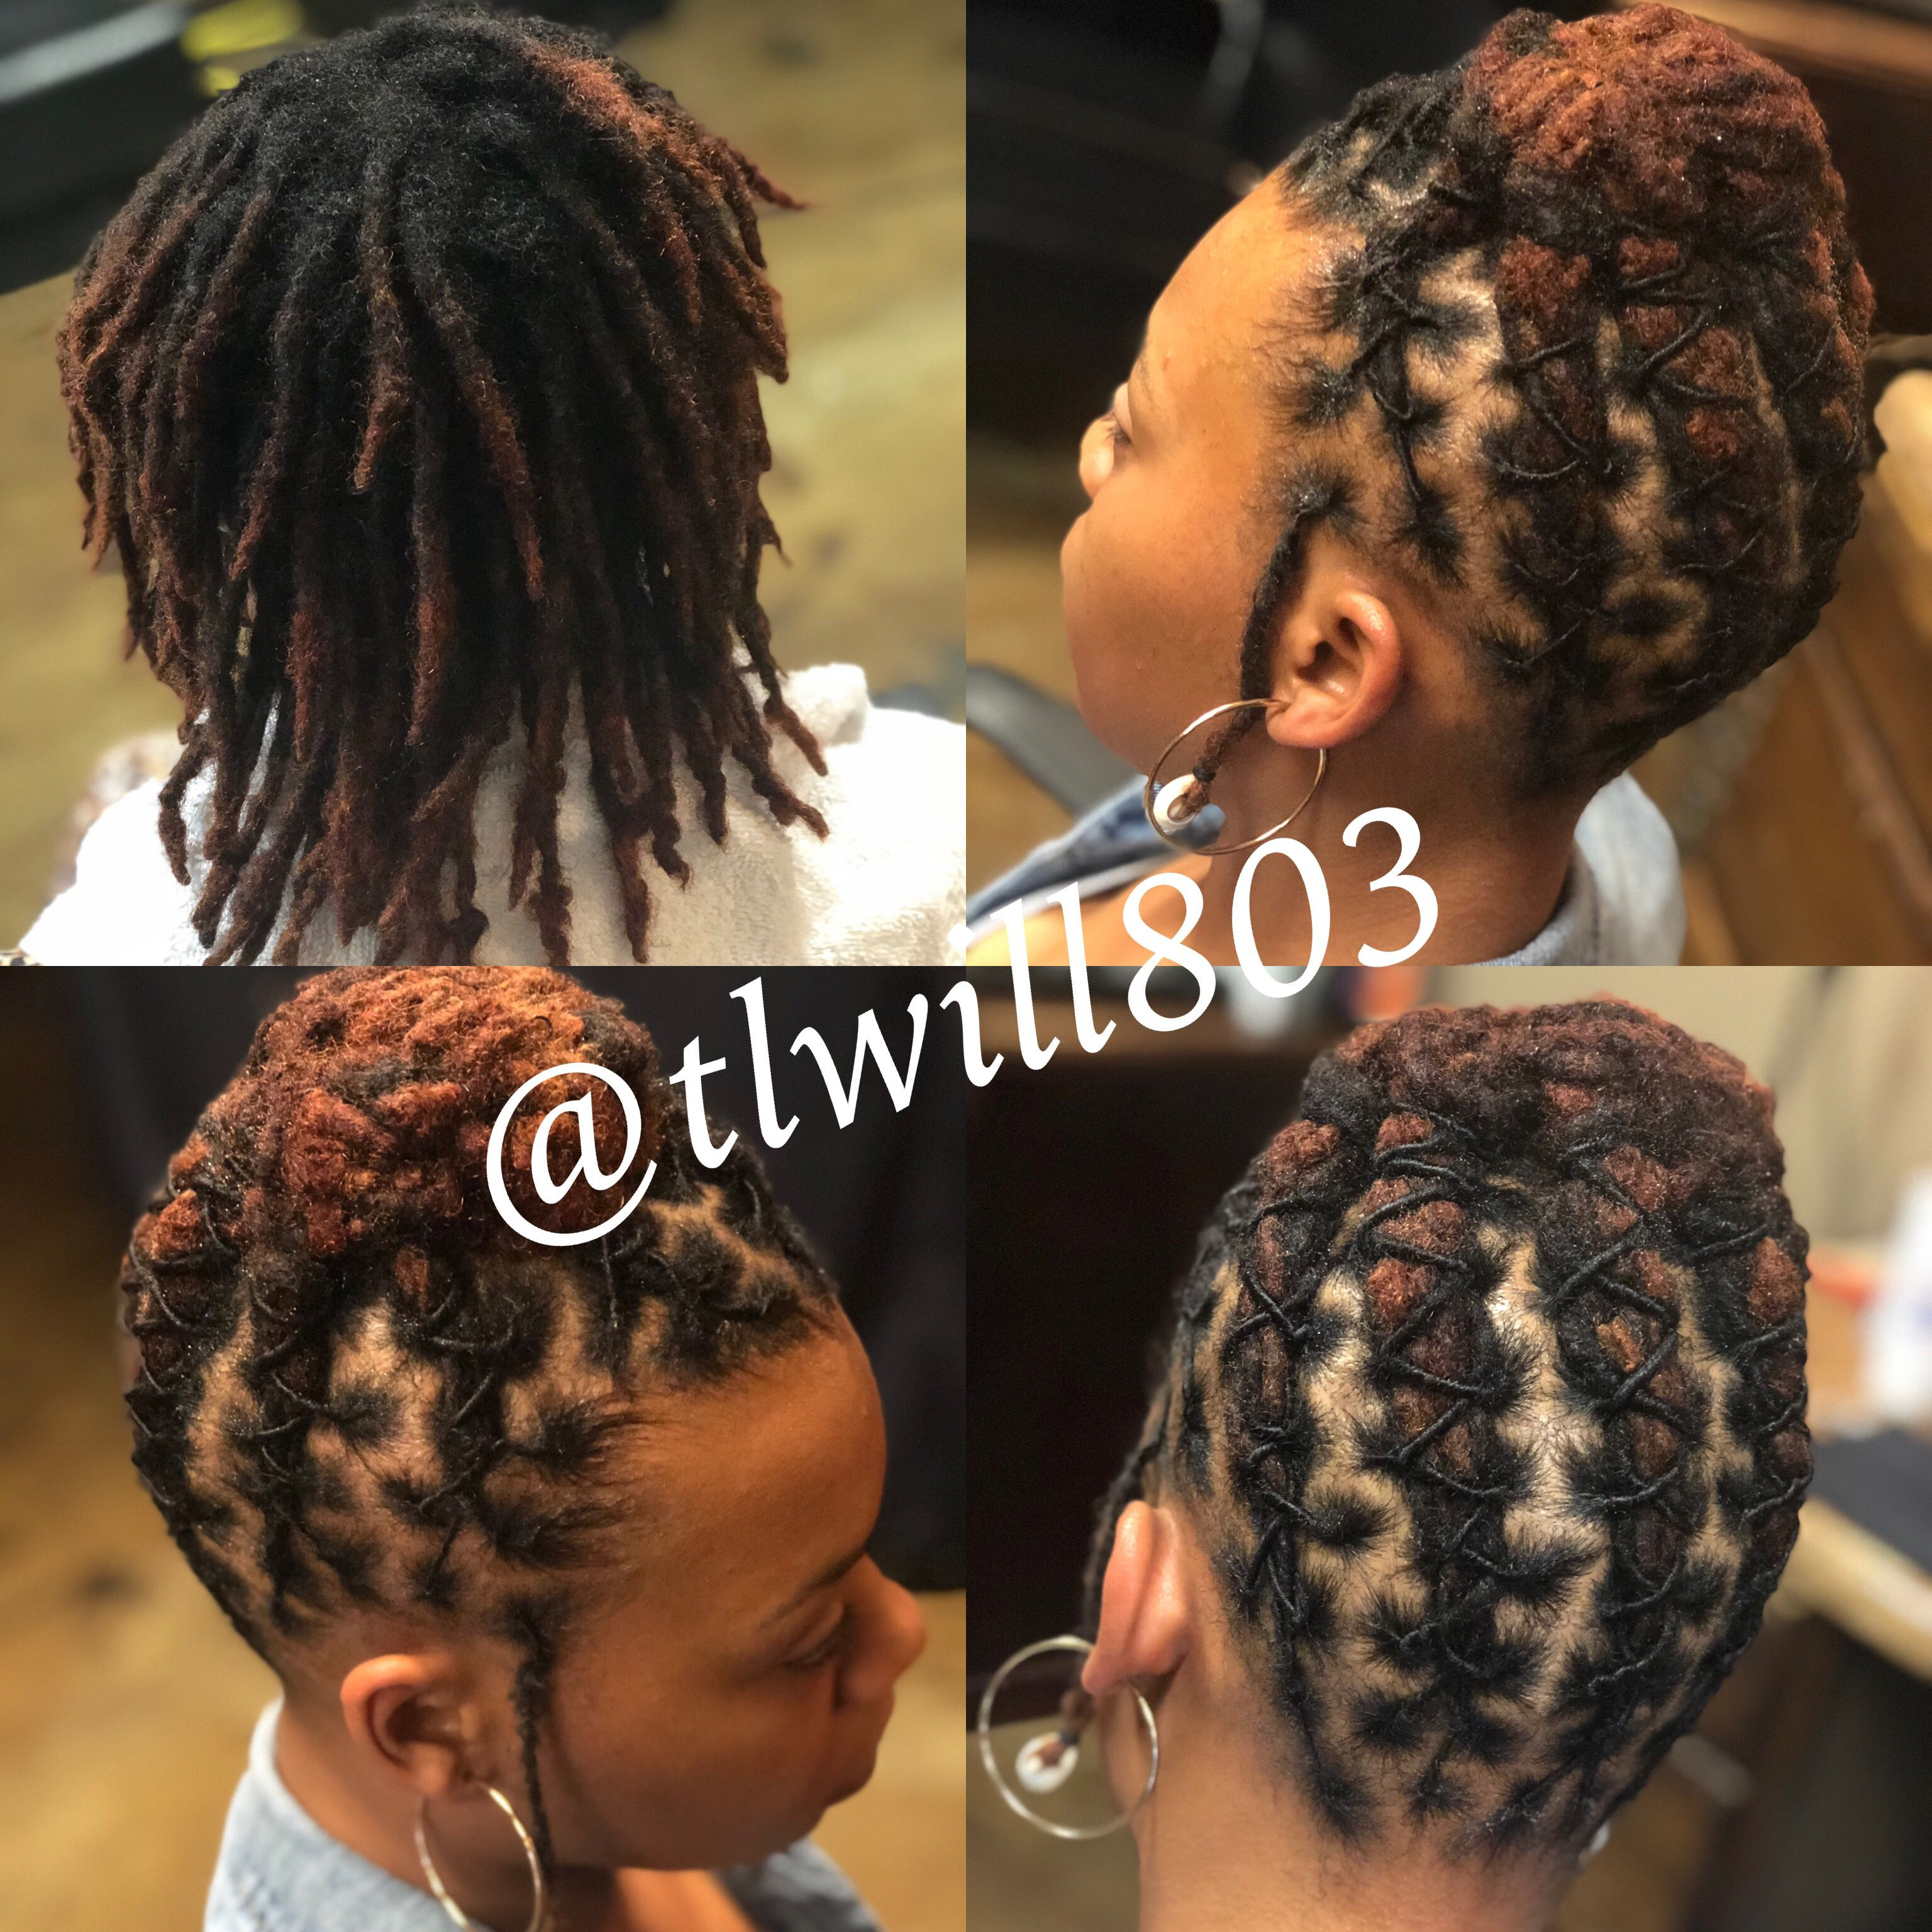 Pin By Tl Will On Loc Styles By Tlwill Short Dreadlocks Styles Short Locs Hairstyles Dreads Styles For Women